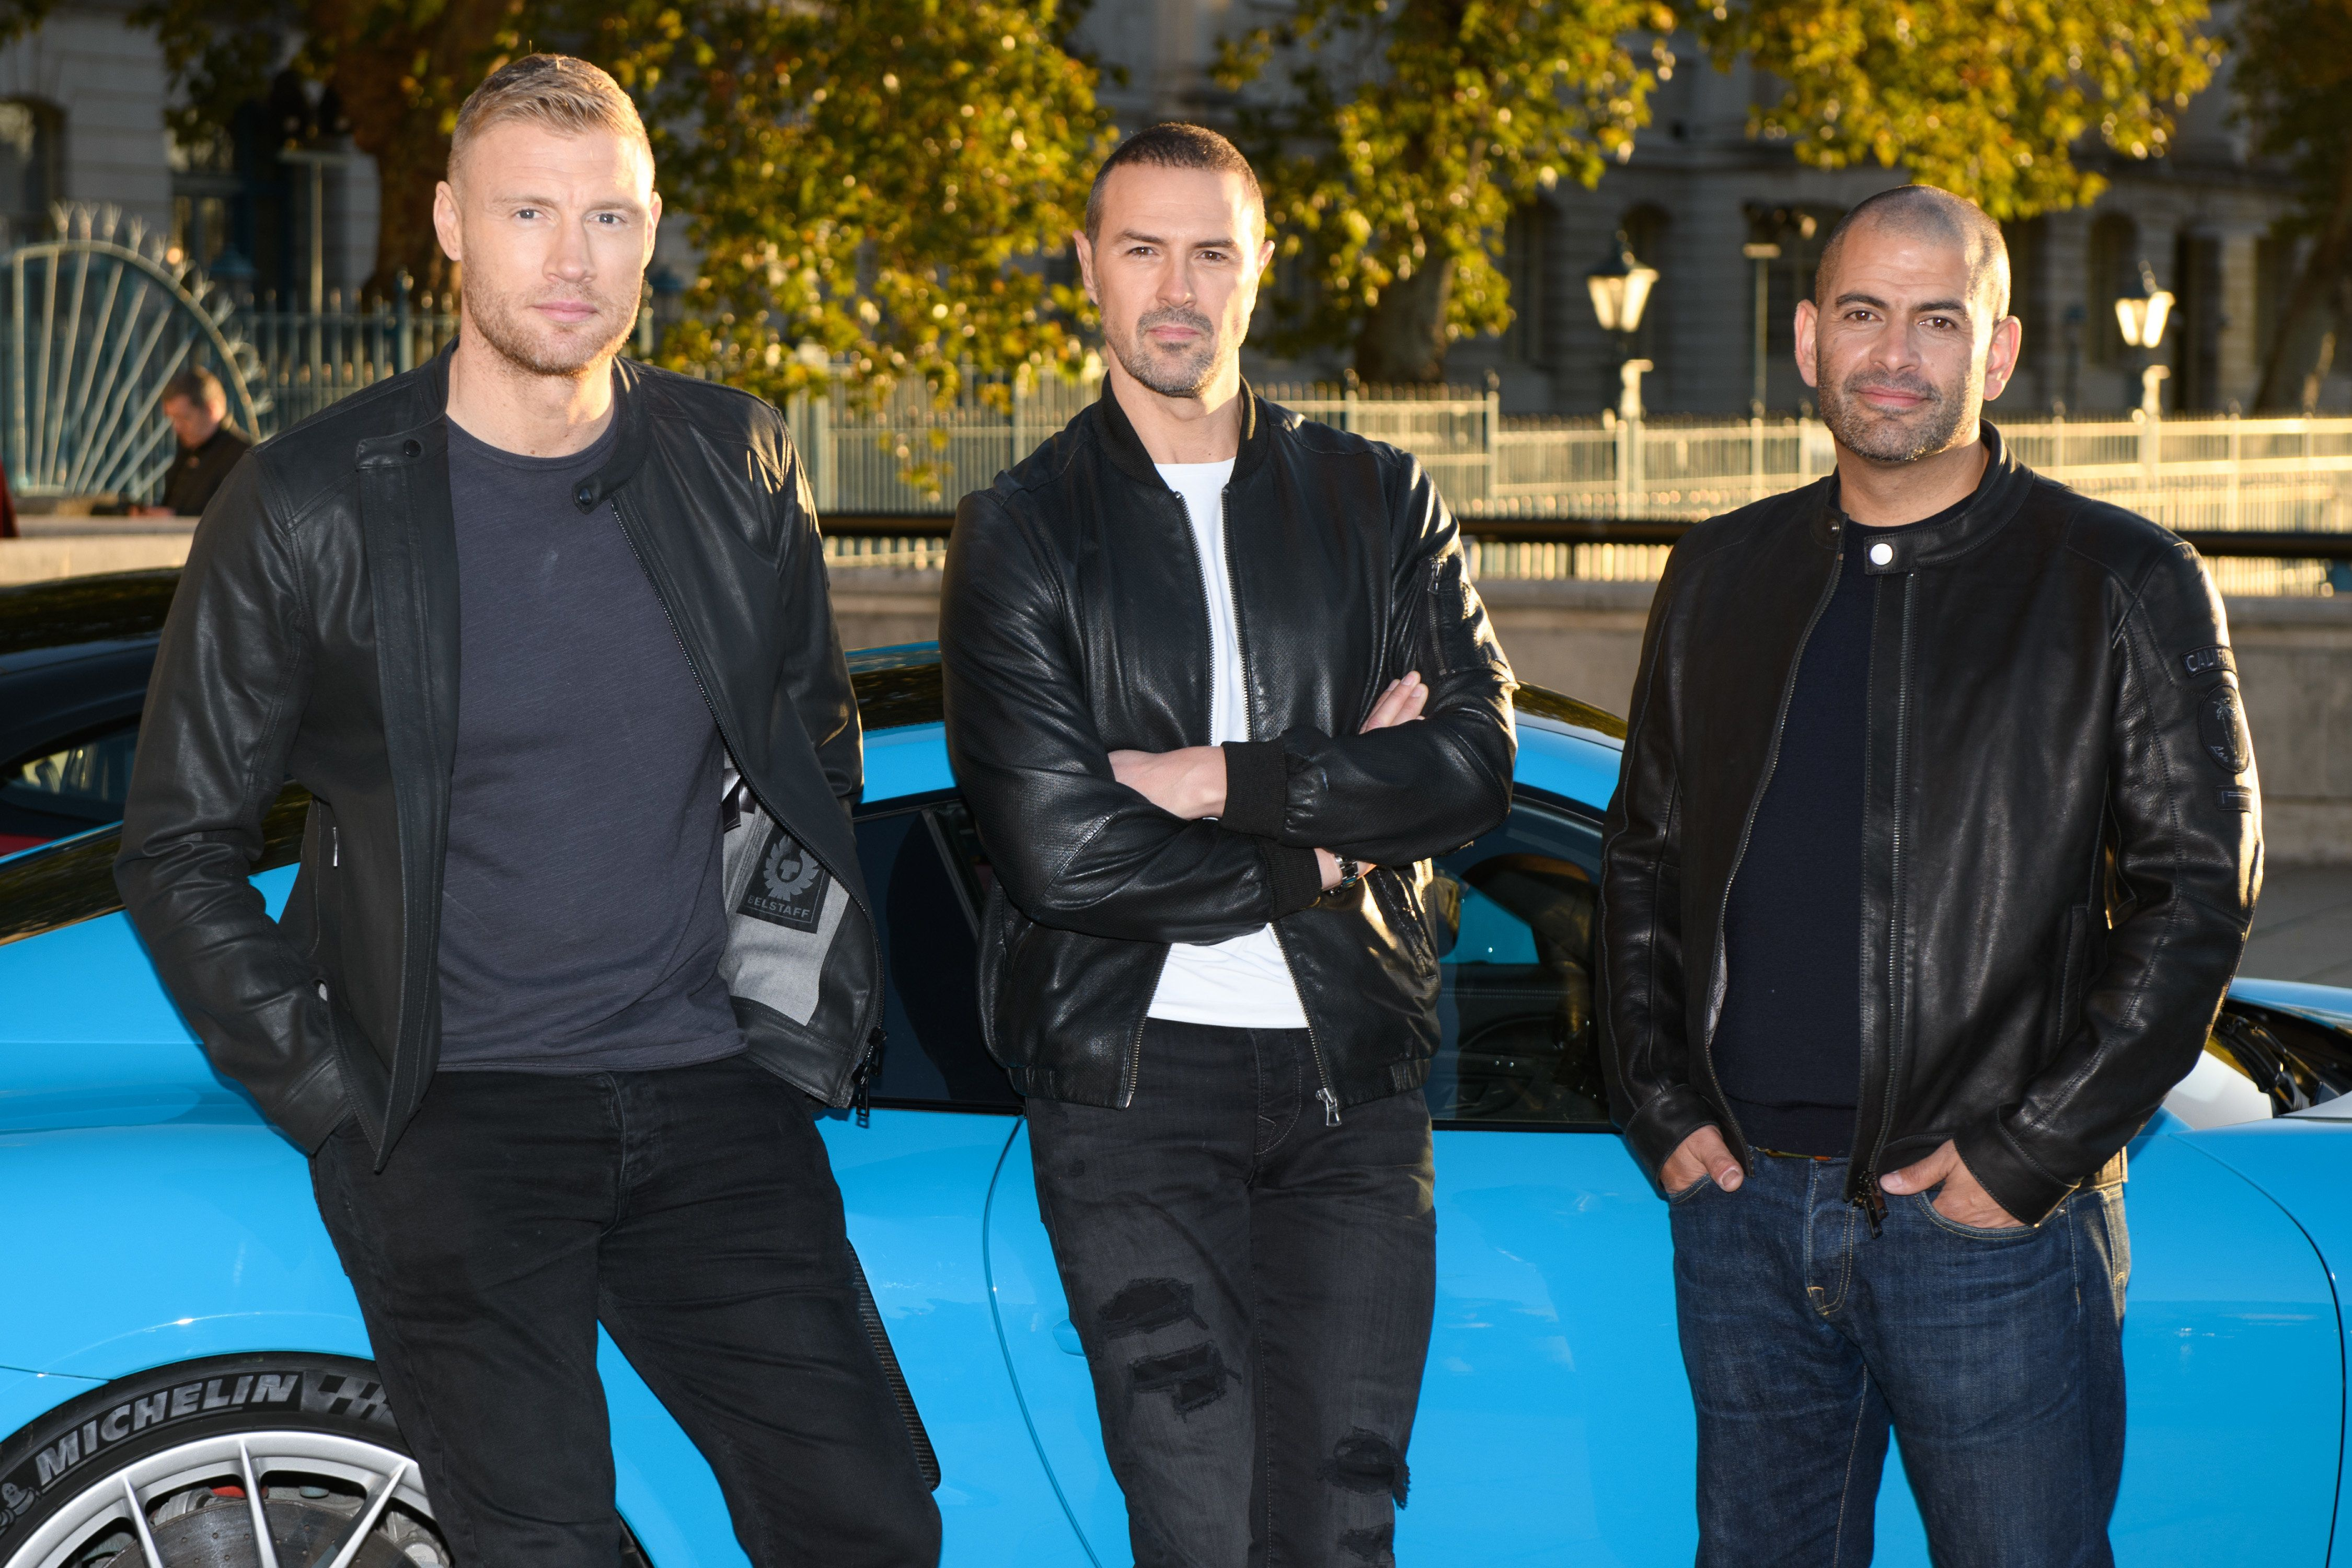 Paddy McGuinness And Freddie Flintoff Announced As New Hosts Of 'Top